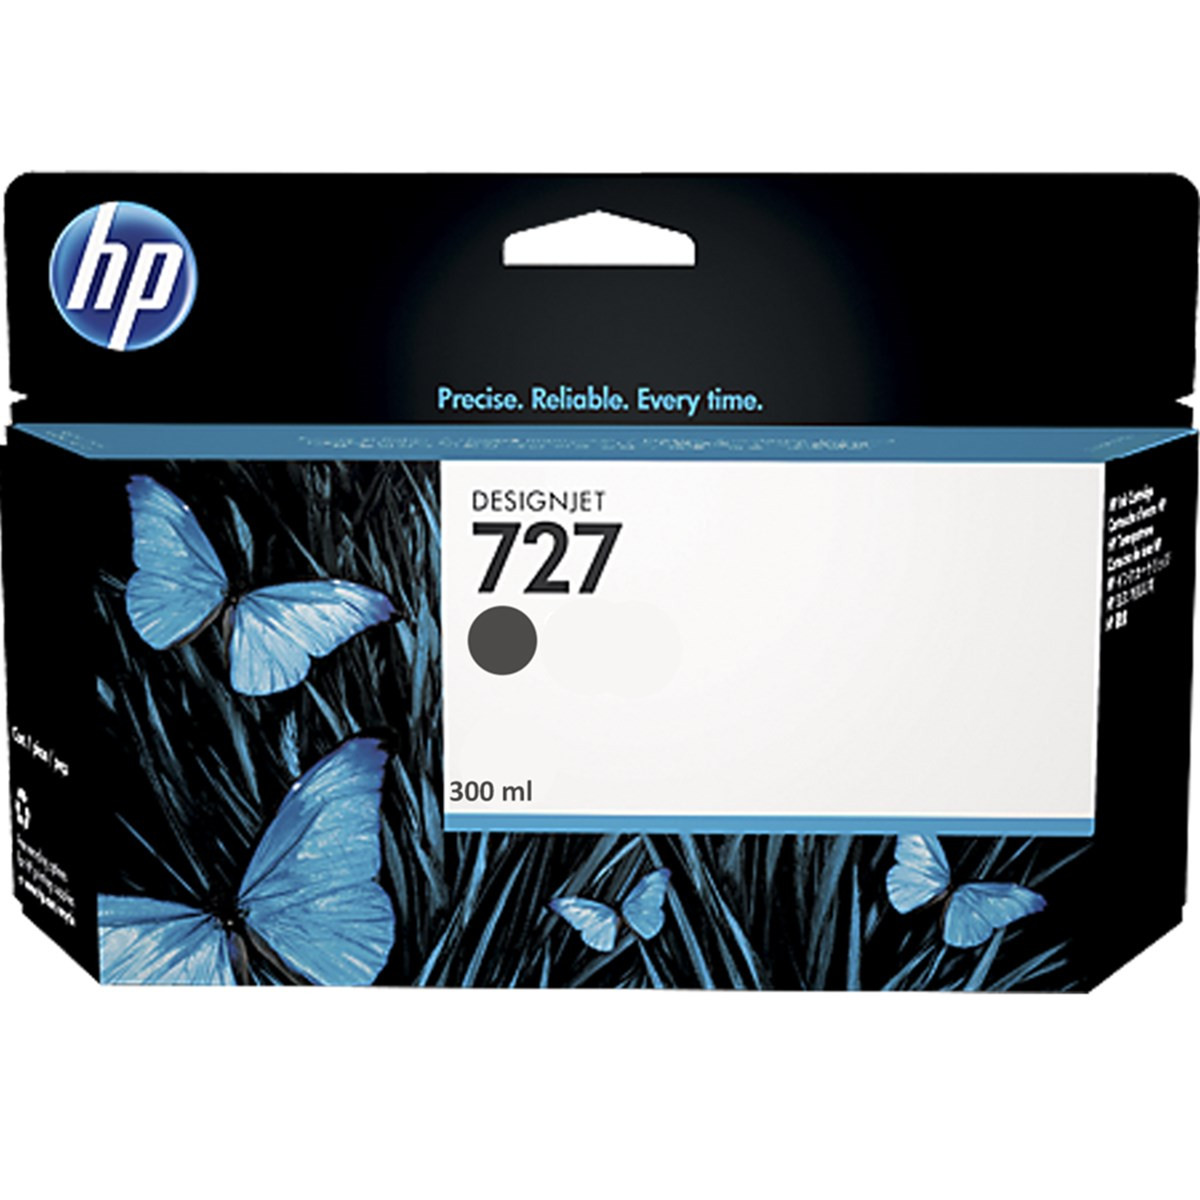 Cartucho de Tinta para Plotter HP 727 C1Q12A Preto Fosco | T2500 T1500 T920 T1530 | Original 300ml